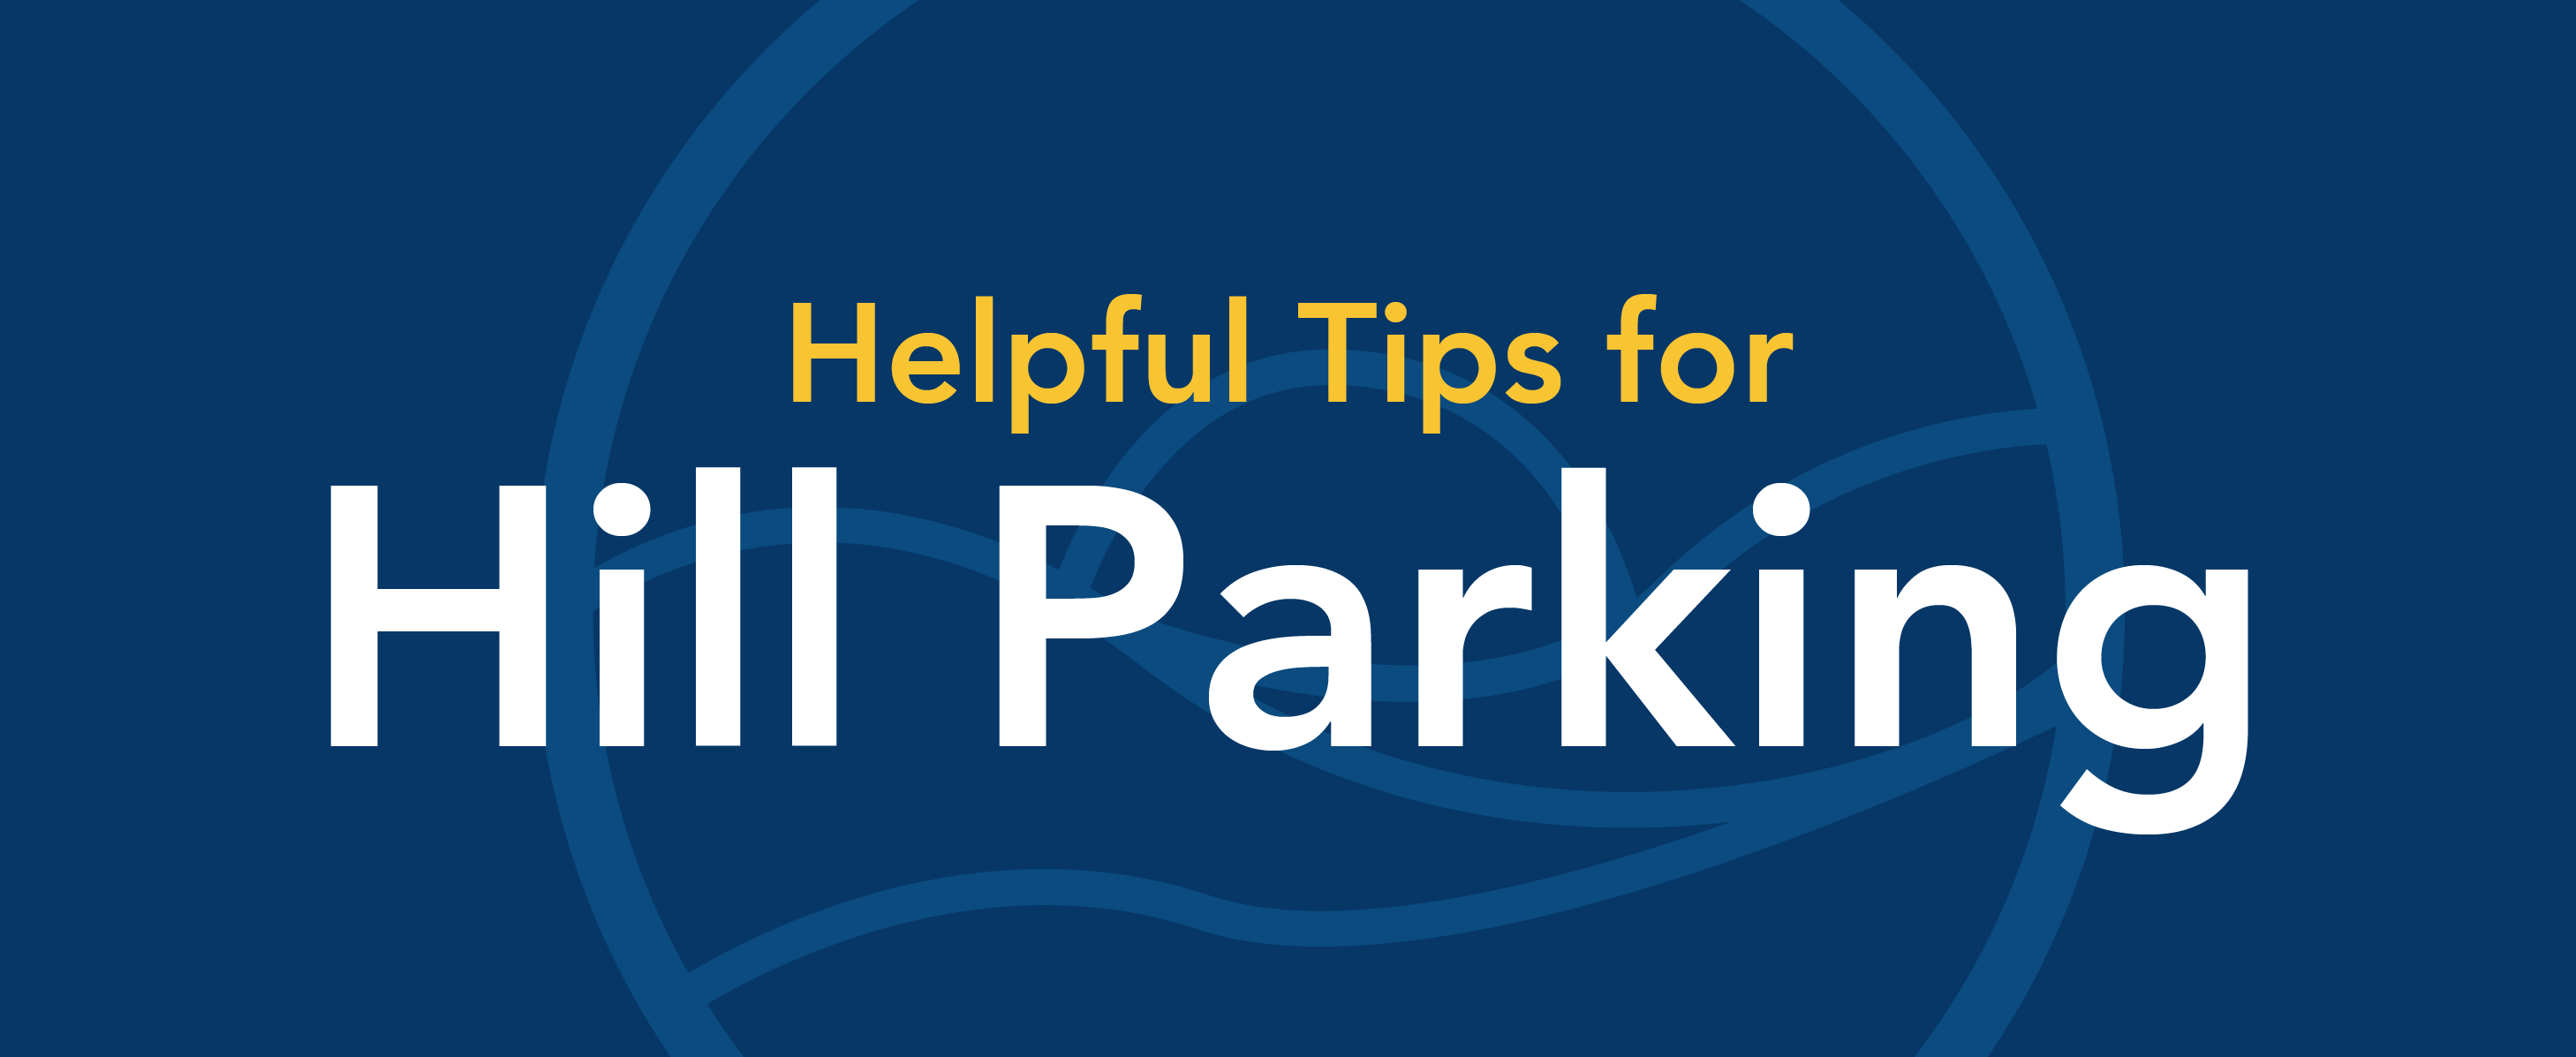 Helpful tips for hill parking.